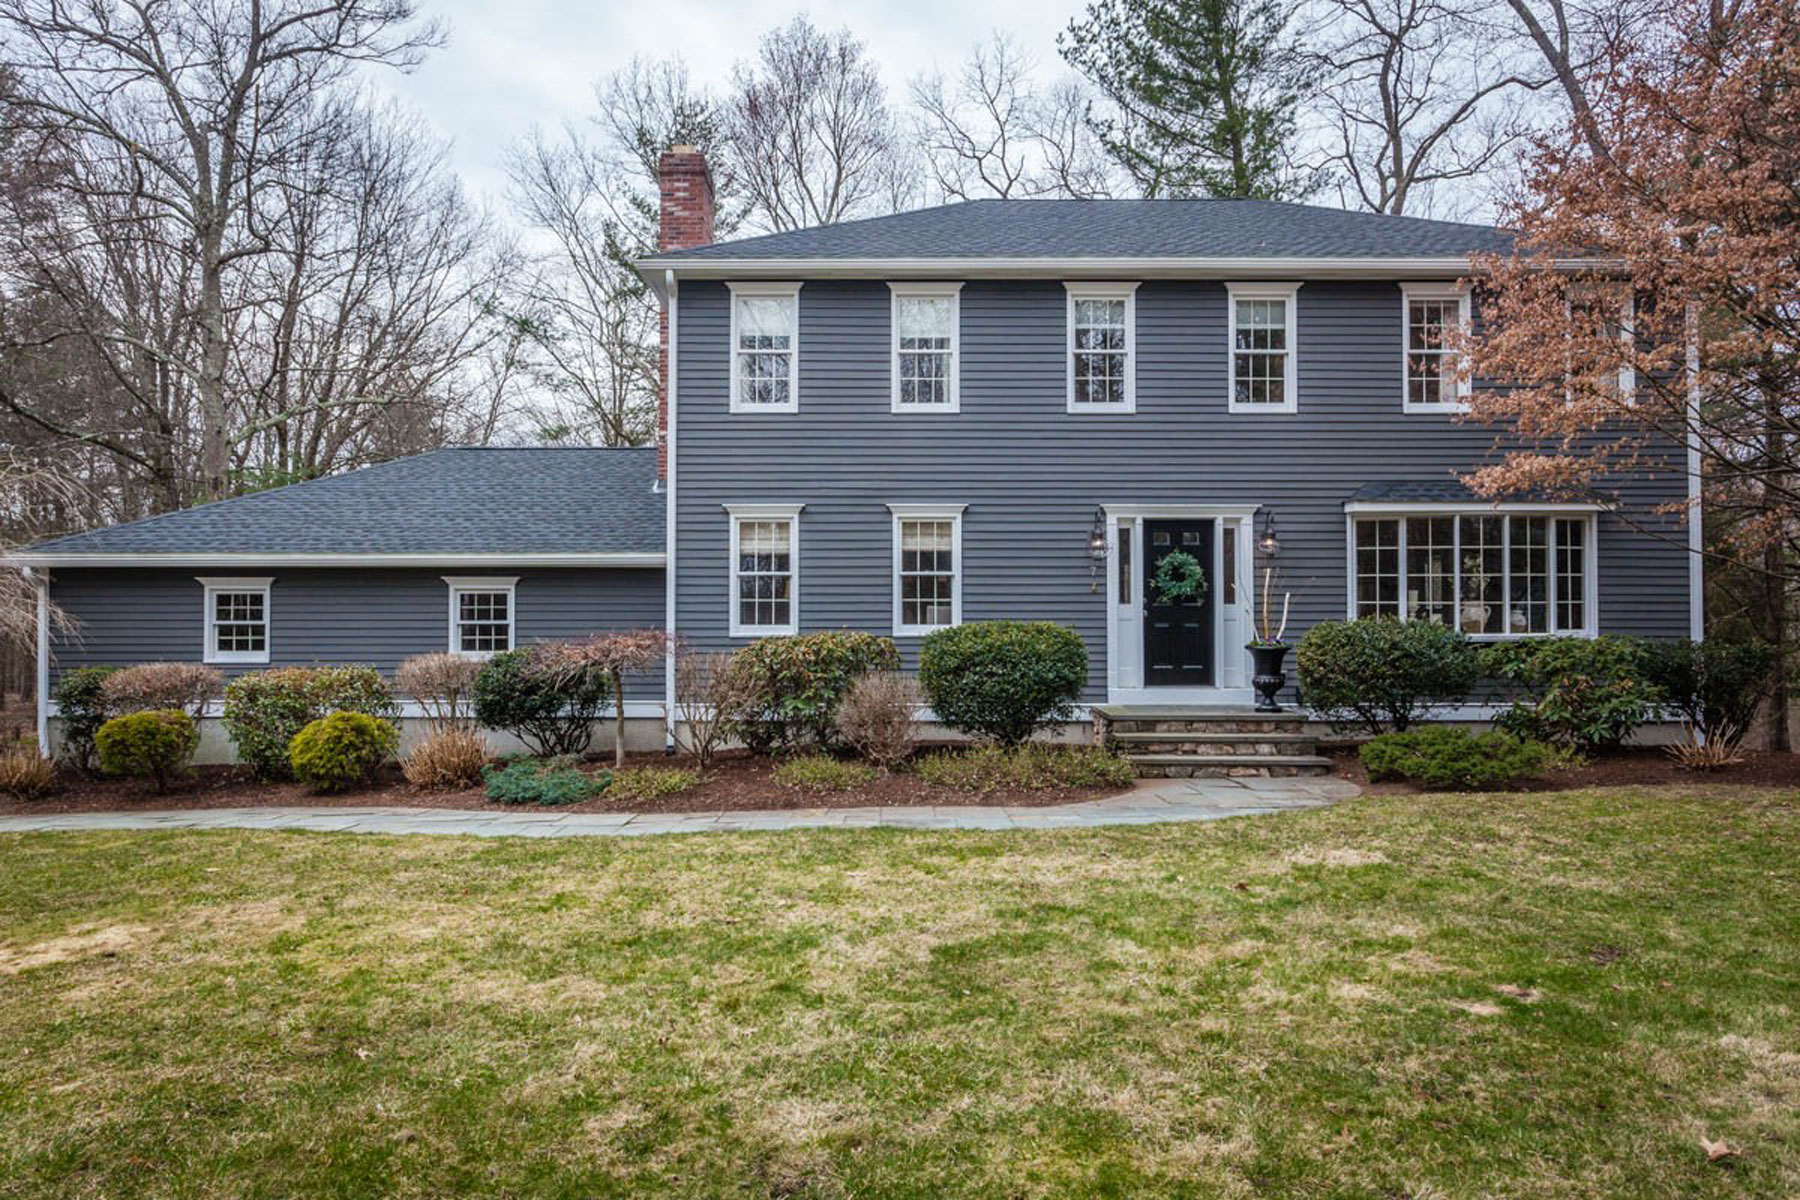 Single Family Home for Sale at BEAUTIFUL WELL MAINTAINED COLONIAL 7 Garrison Lane Southborough, Massachusetts 01772 United States